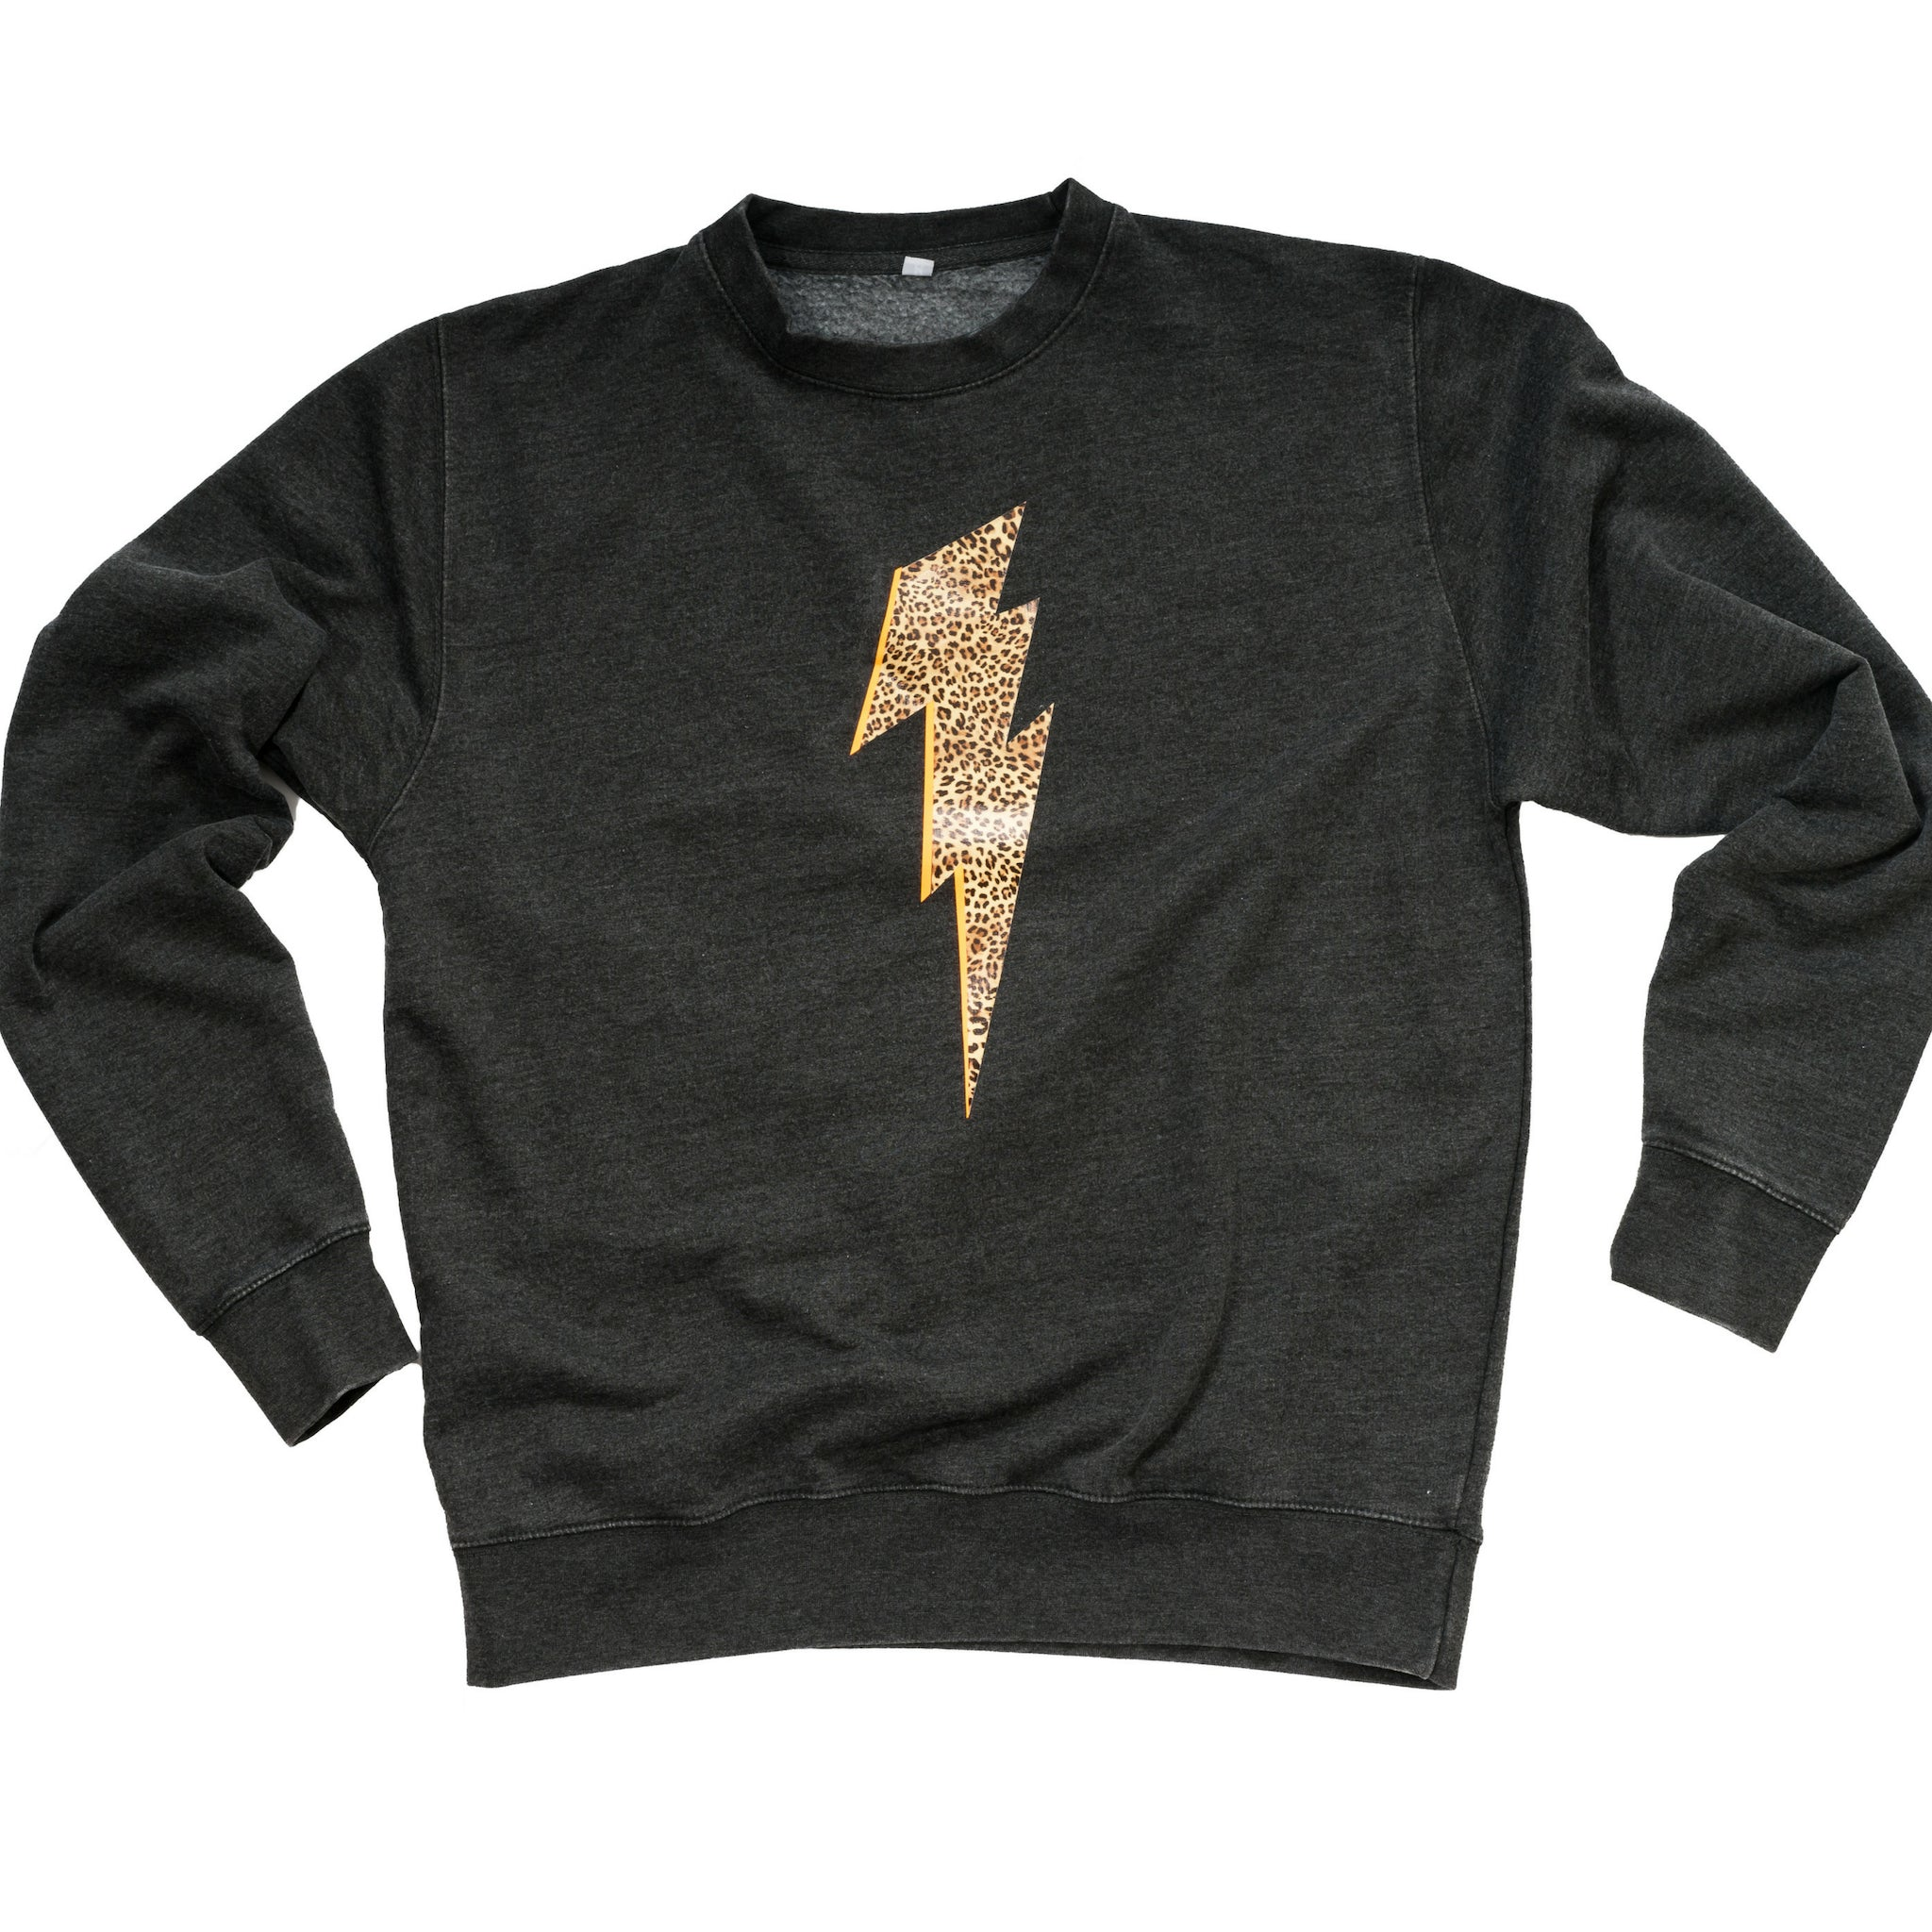 charcoal sweatshirt with leopard lightning bolt